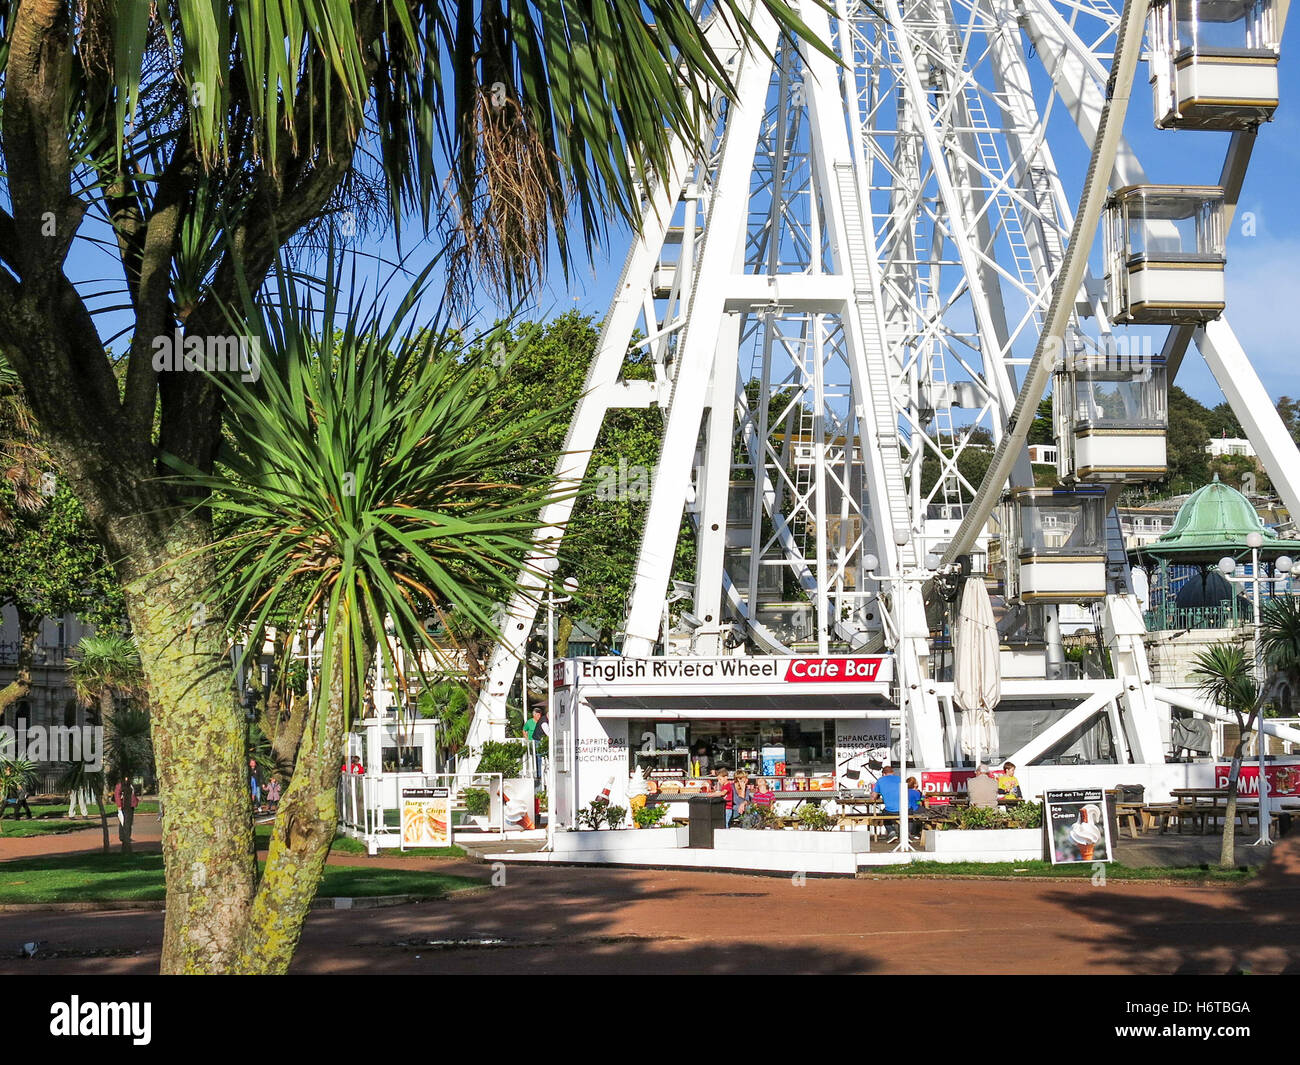 The Riviera Wheel and Cafe behind a Torbay palm tree on a sunny day in Torquay, Devon UK. - Stock Image